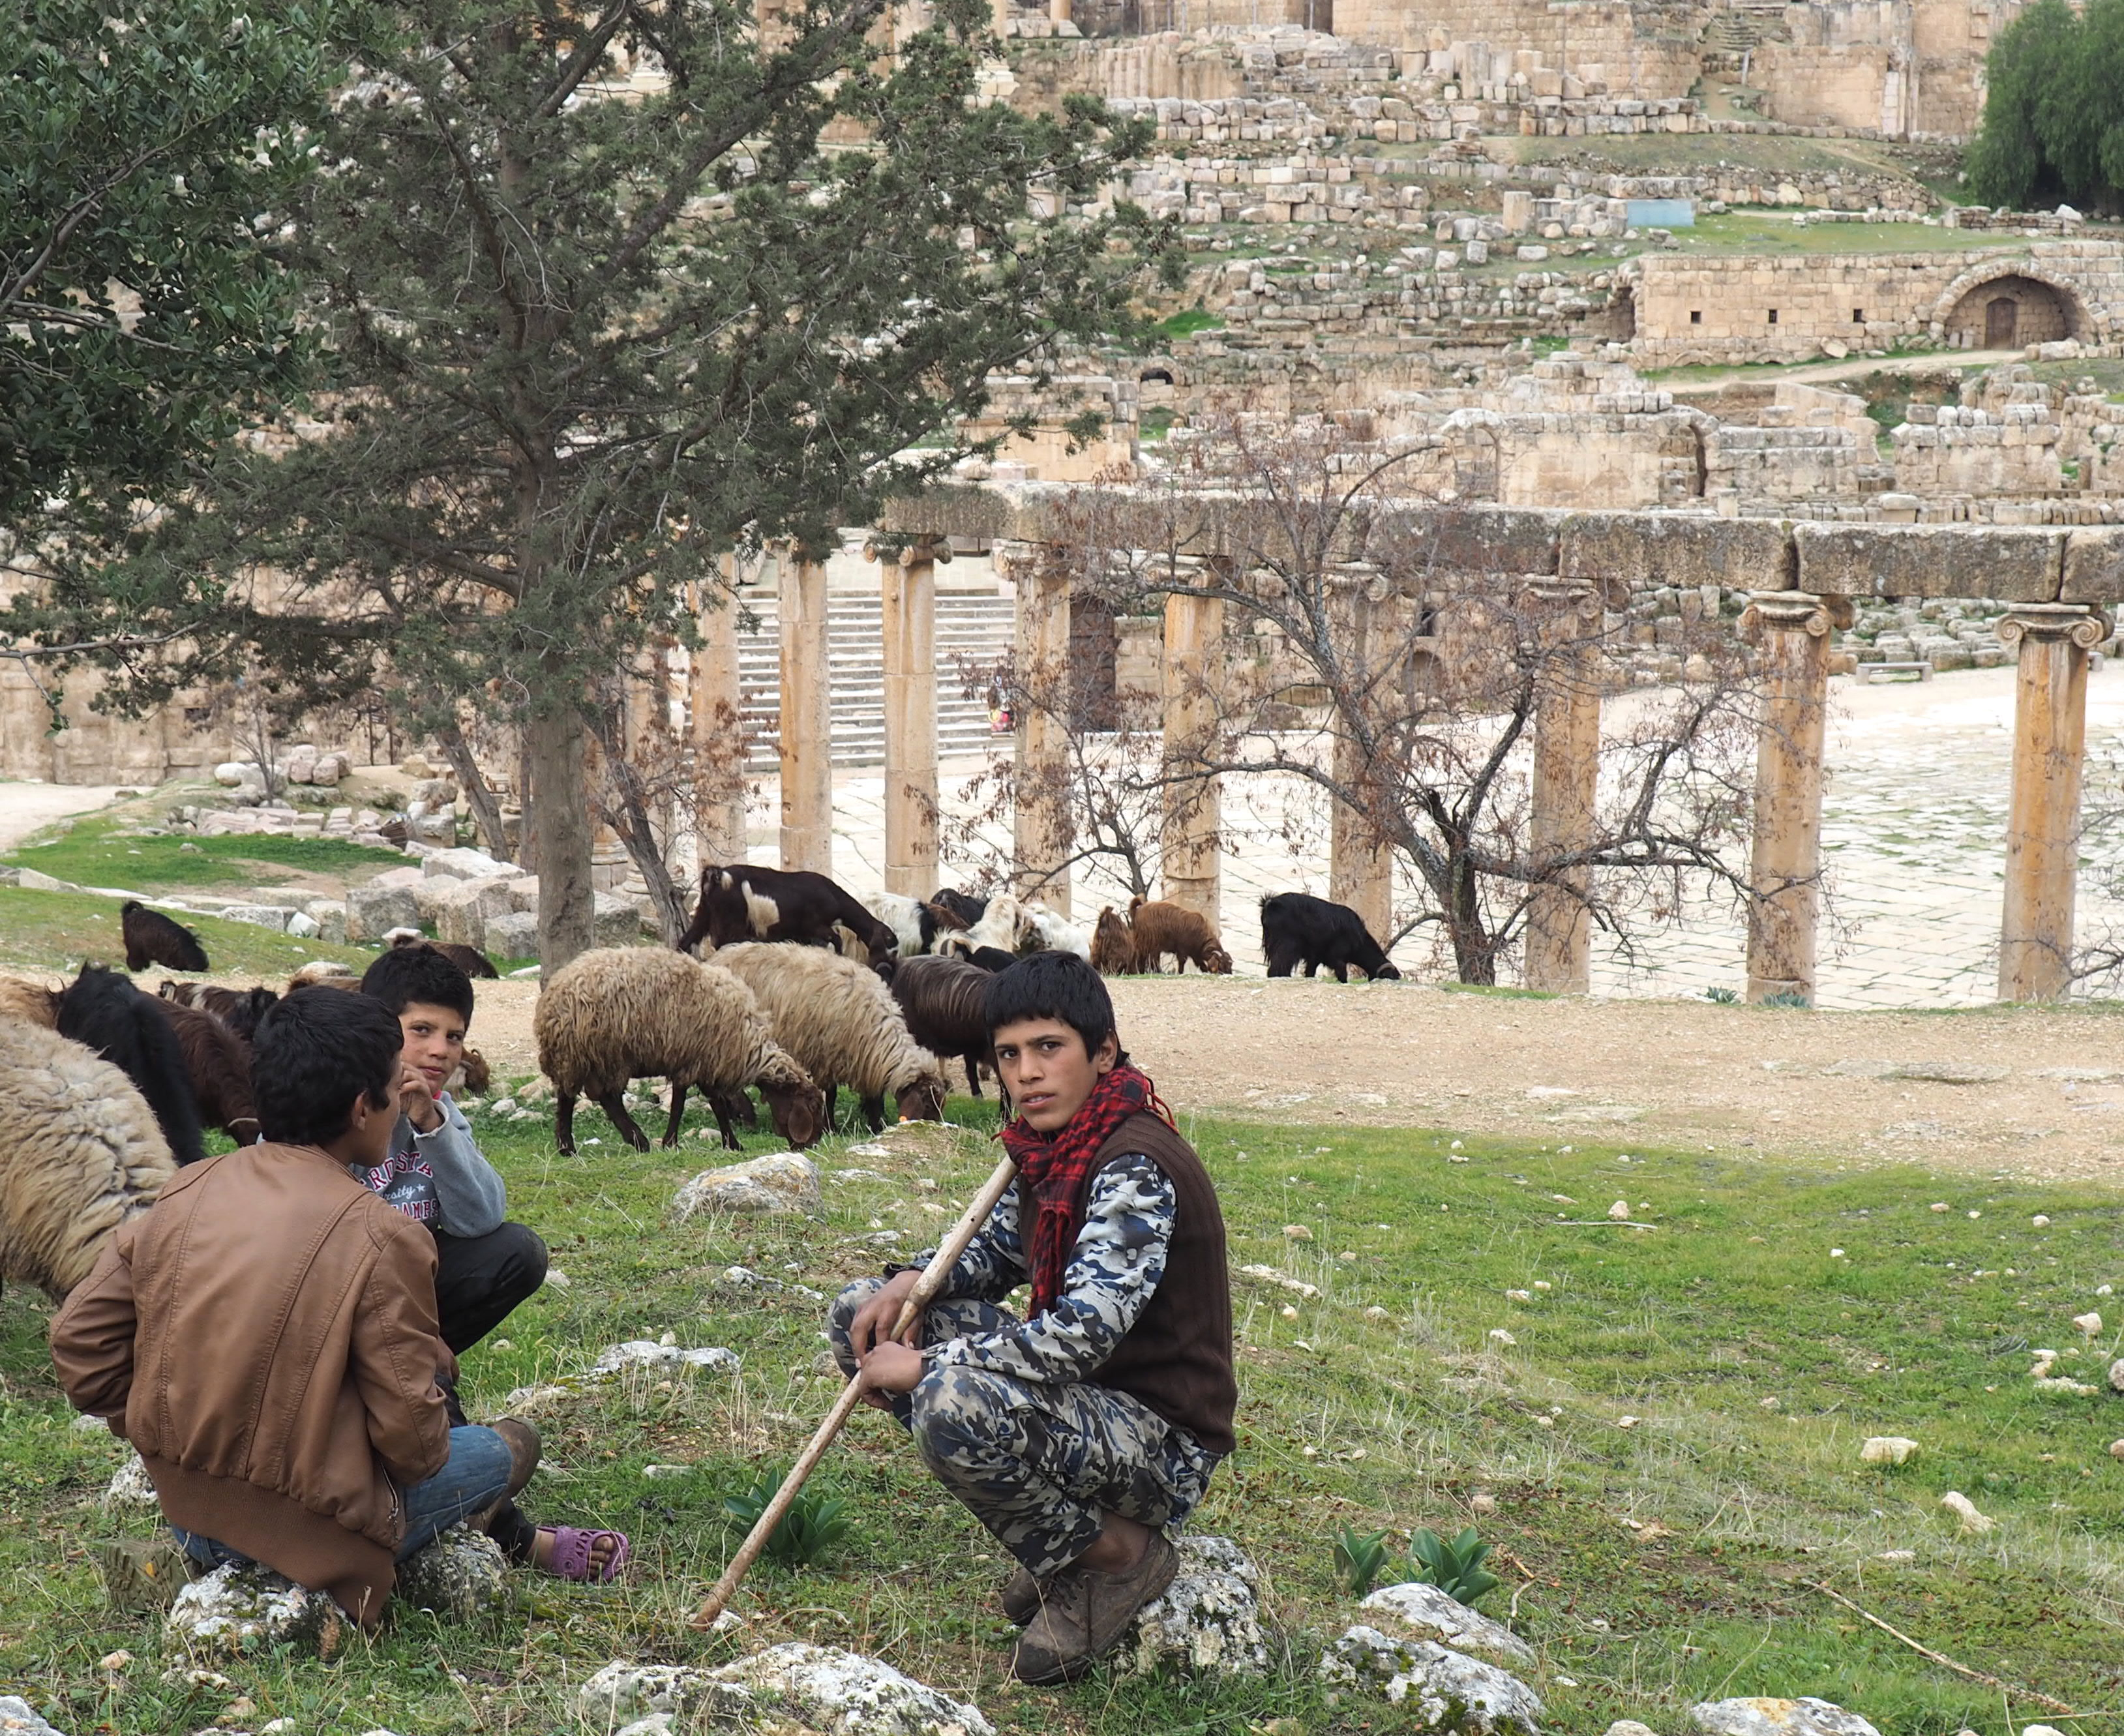 Young Shepherds look over their goats in Jerash, Jordan